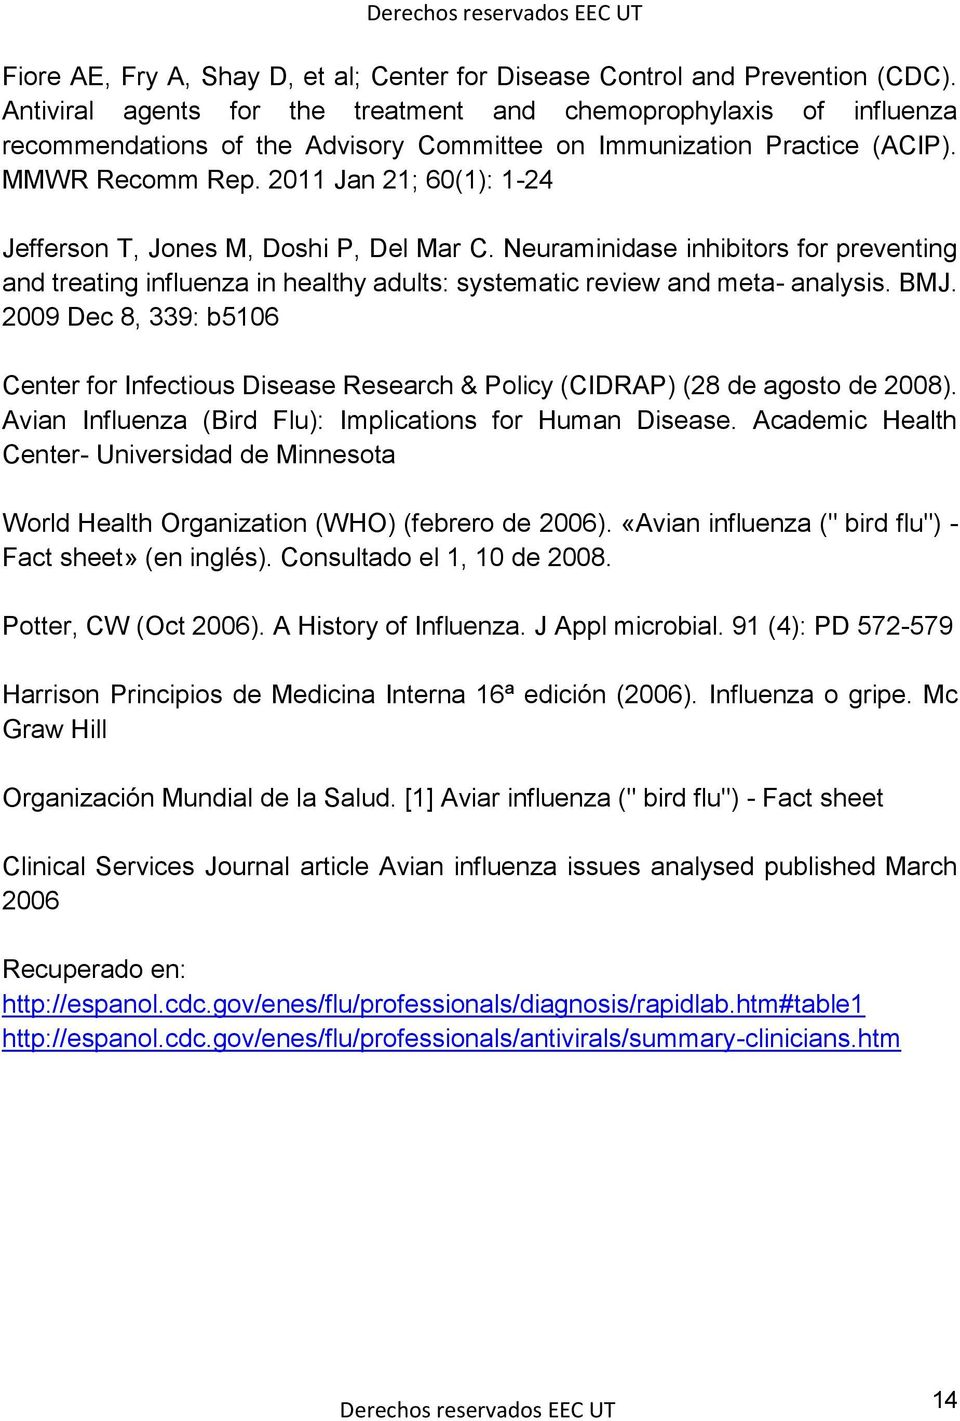 2011 Jan 21; 60(1): 1-24 Jefferson T, Jones M, Doshi P, Del Mar C. Neuraminidase inhibitors for preventing and treating influenza in healthy adults: systematic review and meta- analysis. BMJ.